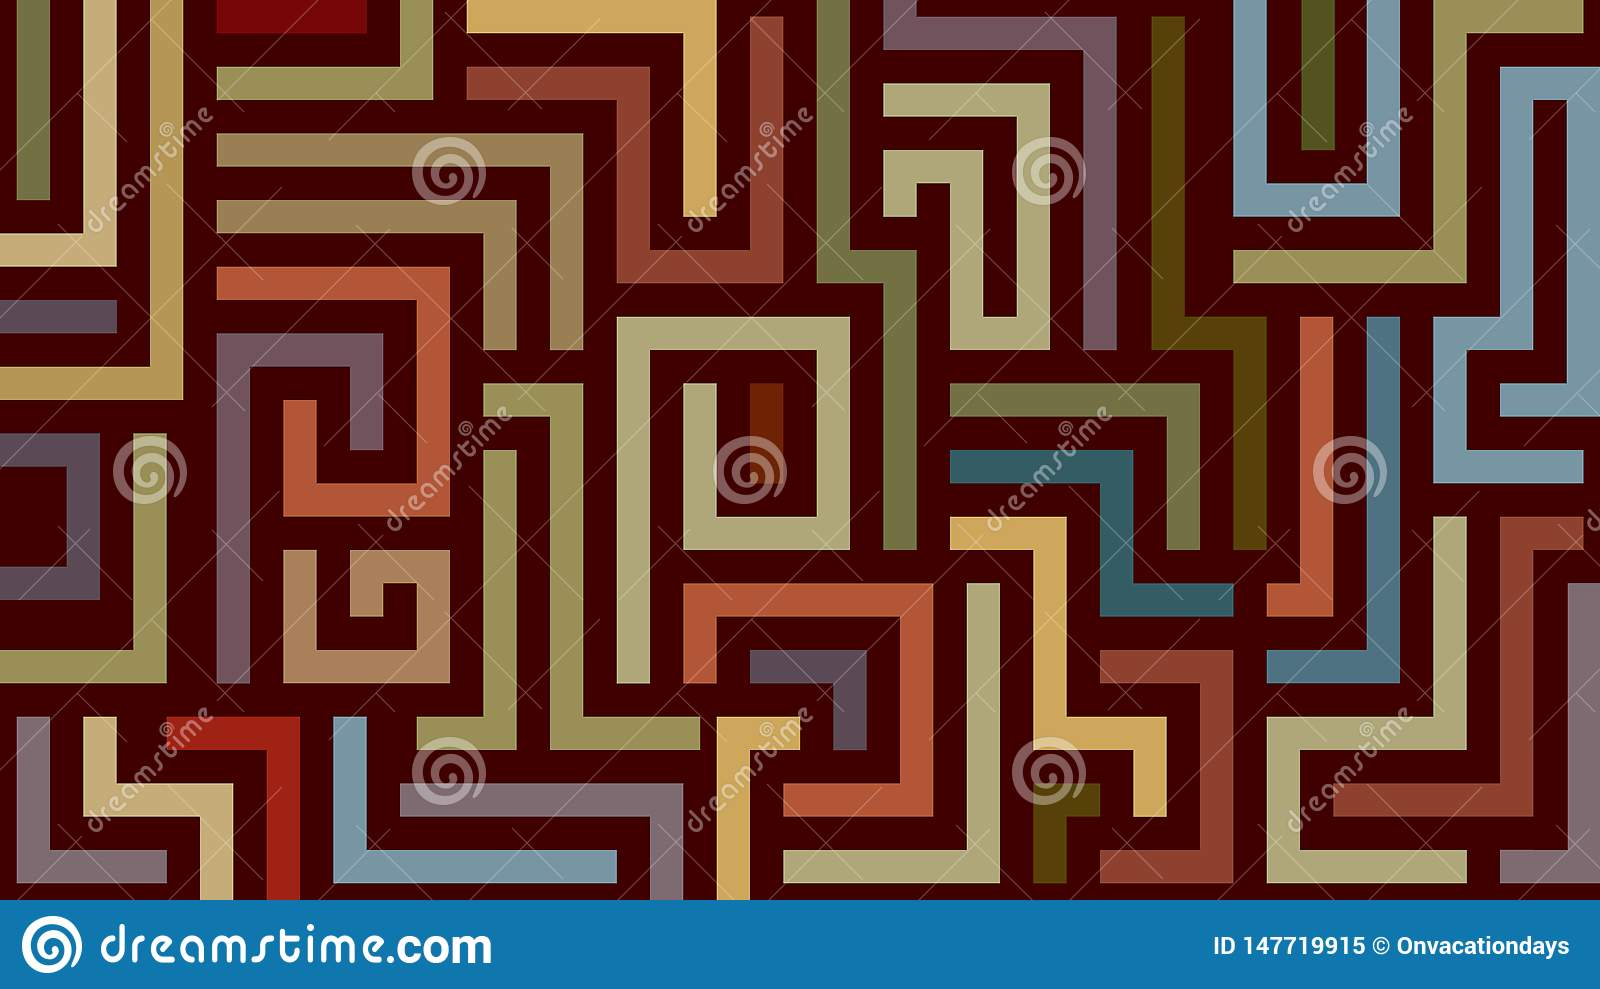 Abstract labyrinth pattern in warm colors